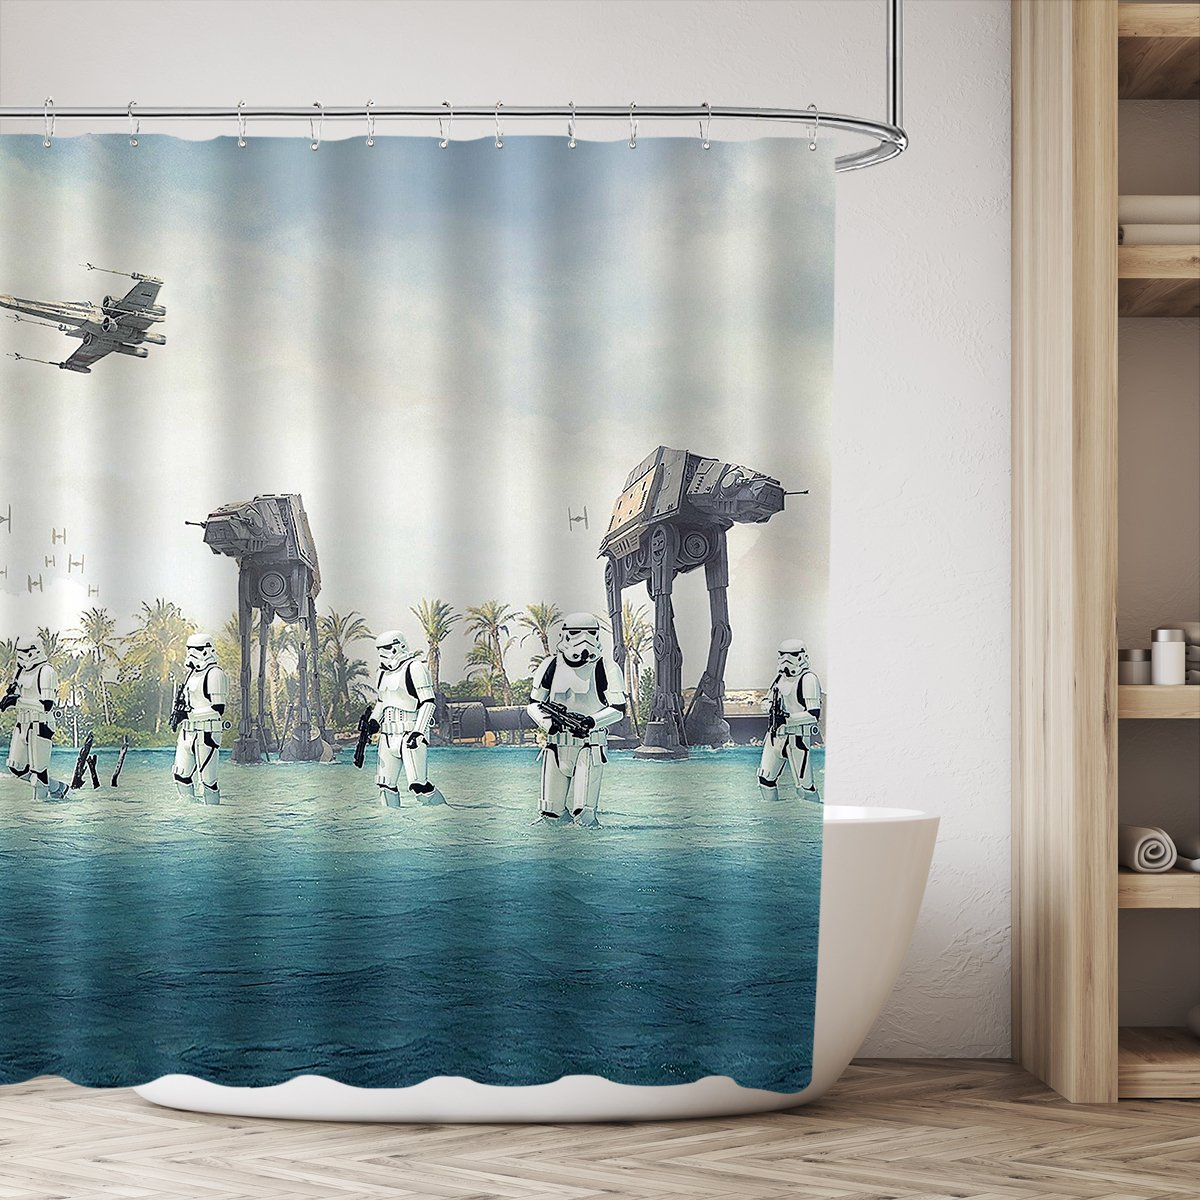 AT-AT Empire Strikes Back In Star Wars Movie Shower Curtain Set Blue Ocean Green Tree Stormtroopers Shower Curtain Panel 72x72 Inch Polyester Waterproof Fabric With 12-Pack Plastic Shower Hooks